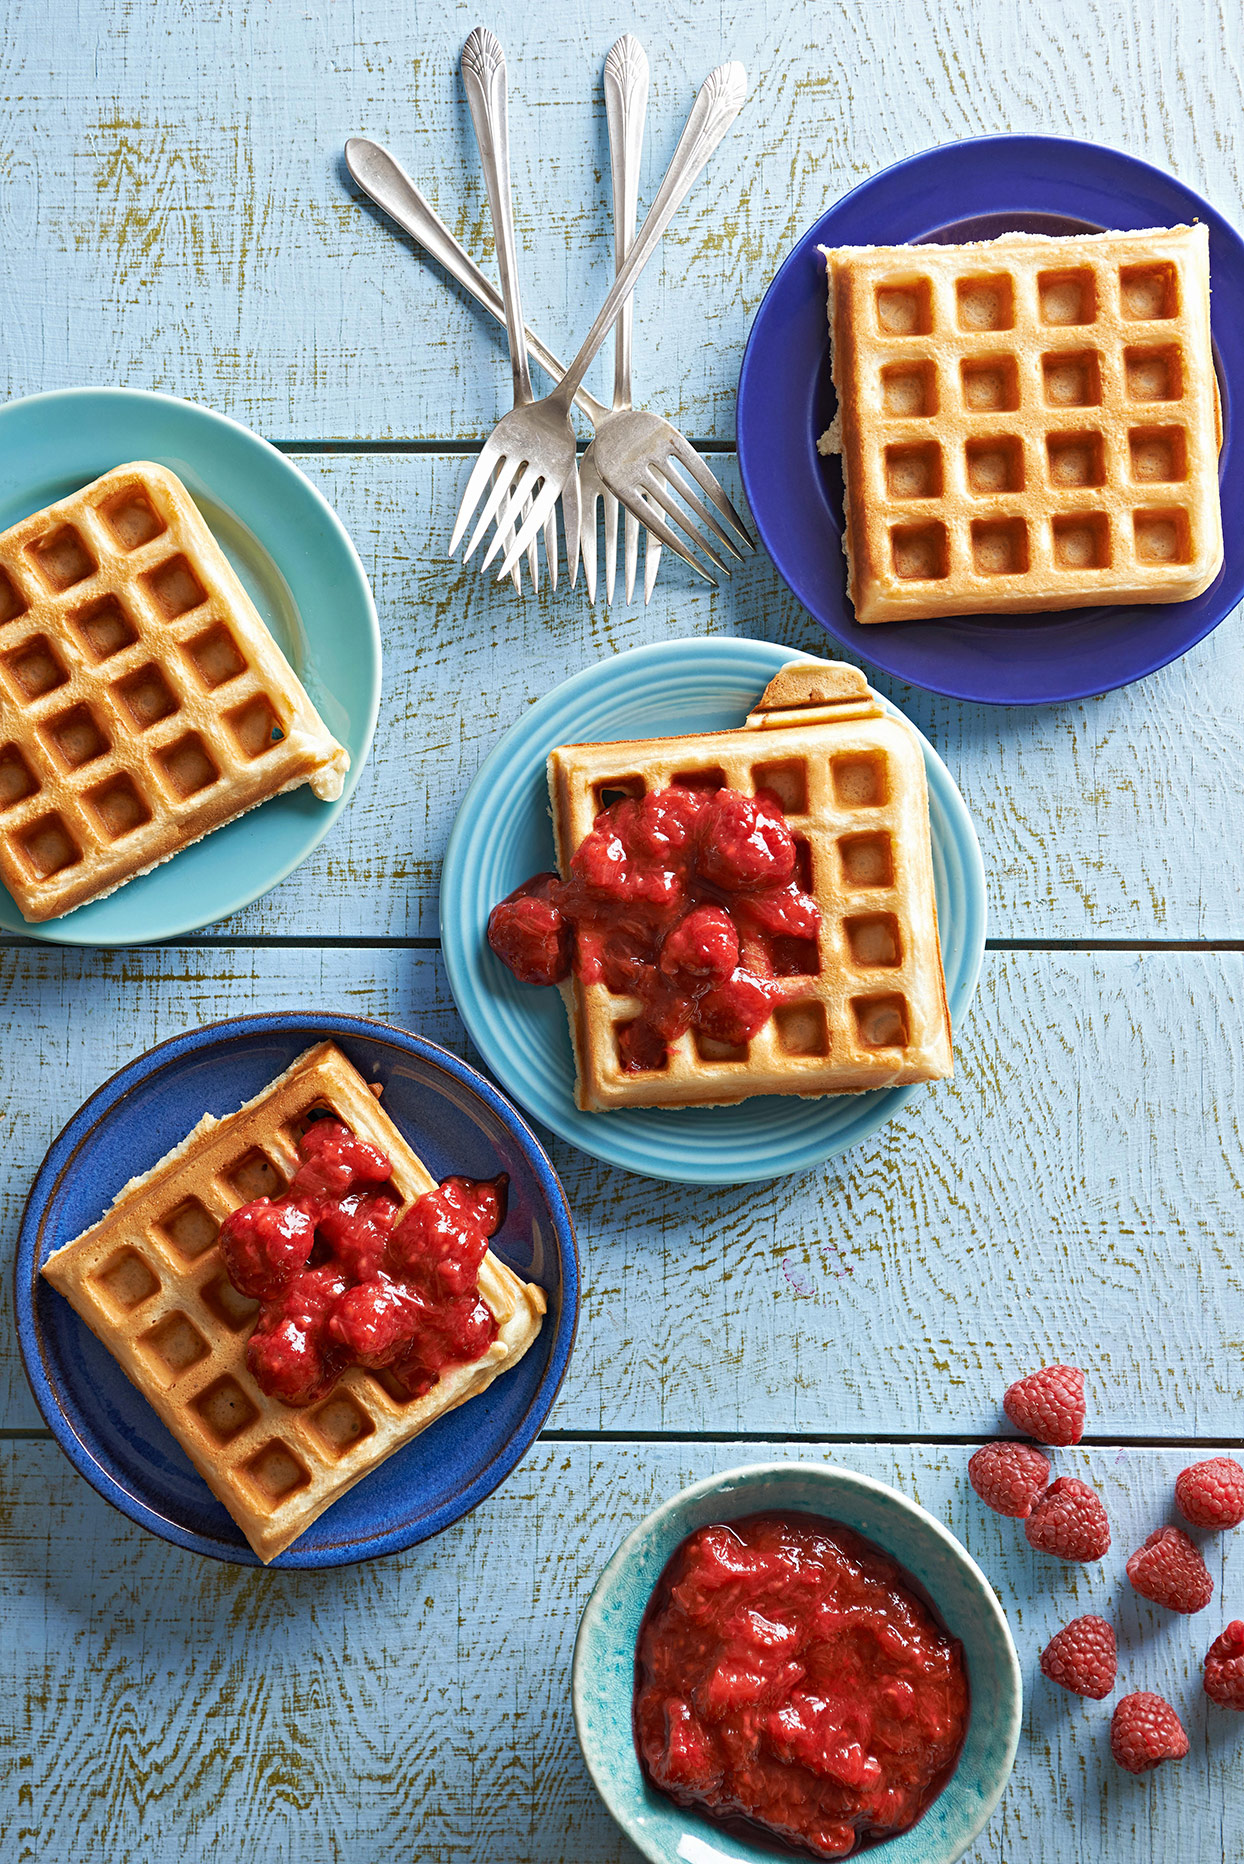 plates of waffles with raspberry-rhubarb topper